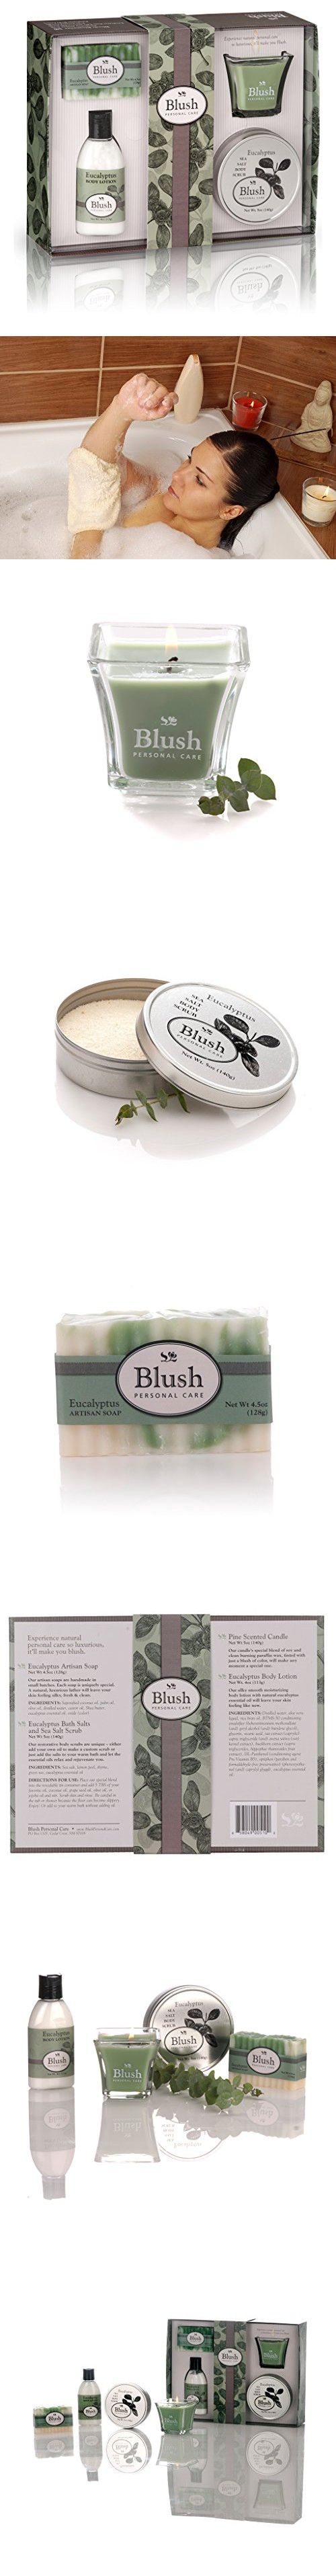 Blush Personal Care Natural Ingredients Bath and Body Gift Set for Women, Eucalyptus